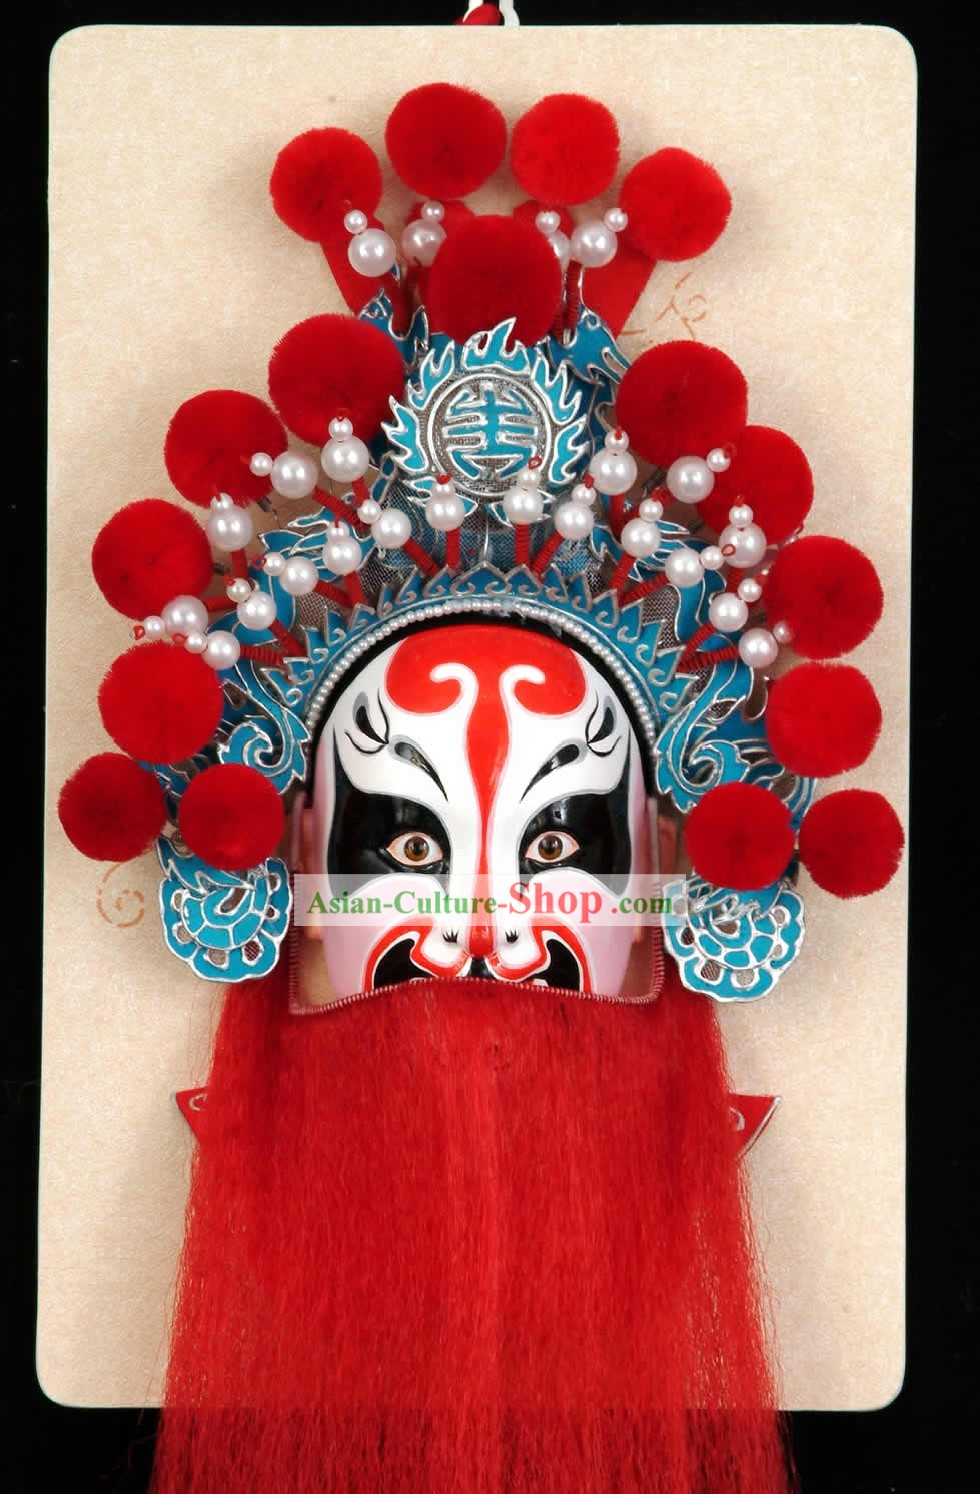 Handcrafted Peking Opera Mask Hanging Decoration - Meng Liang